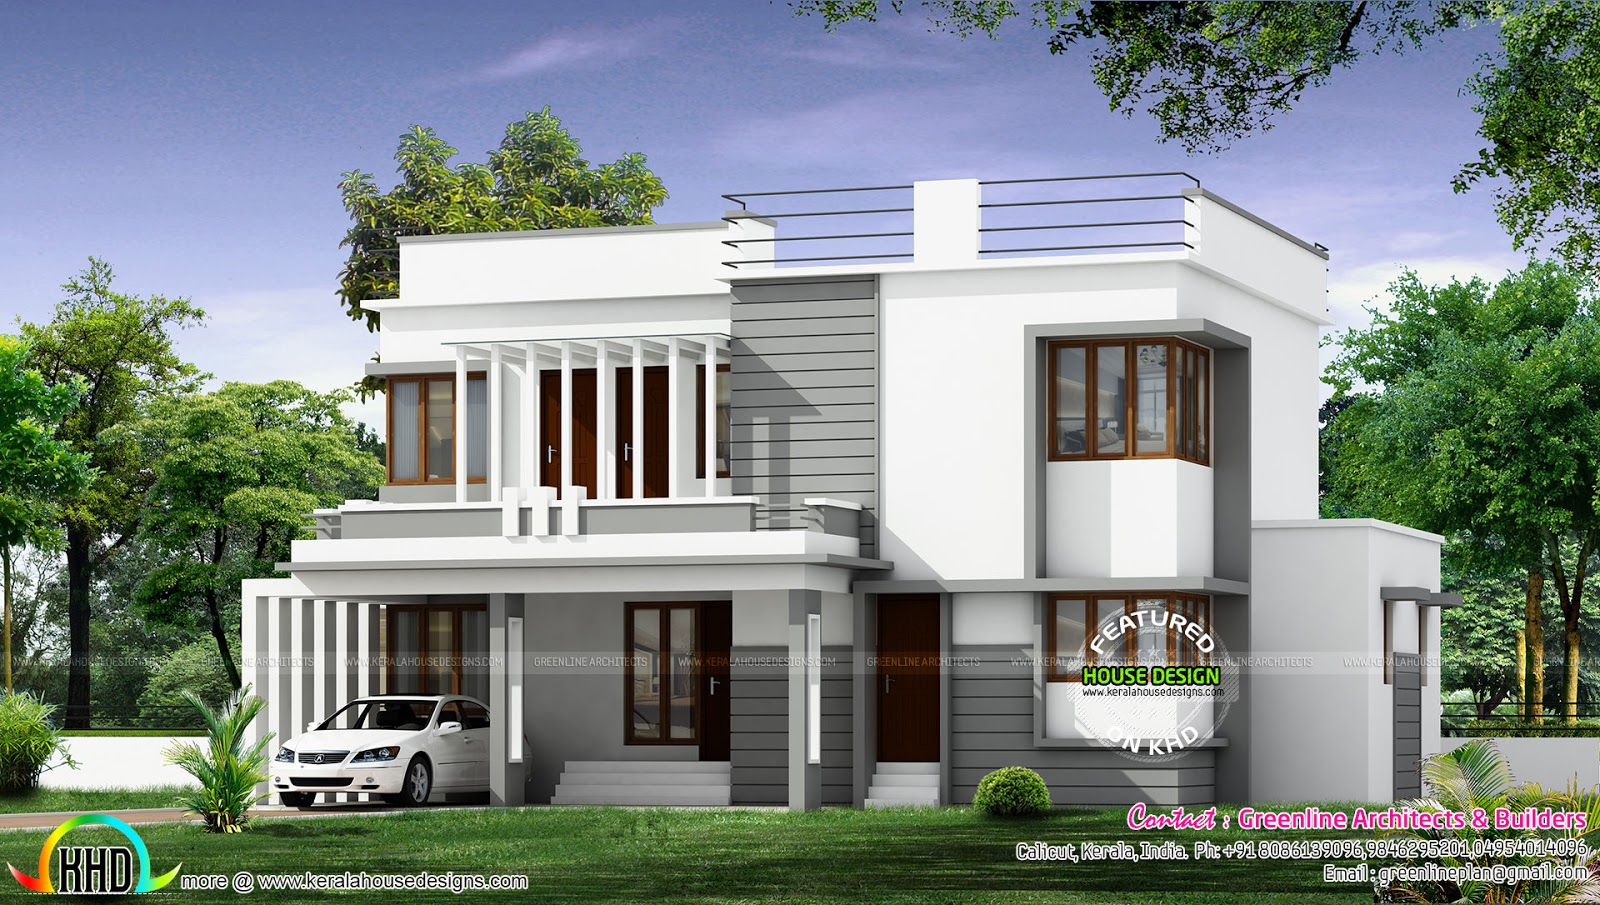 New modern house architecture kerala home design and for Modern house design 2016